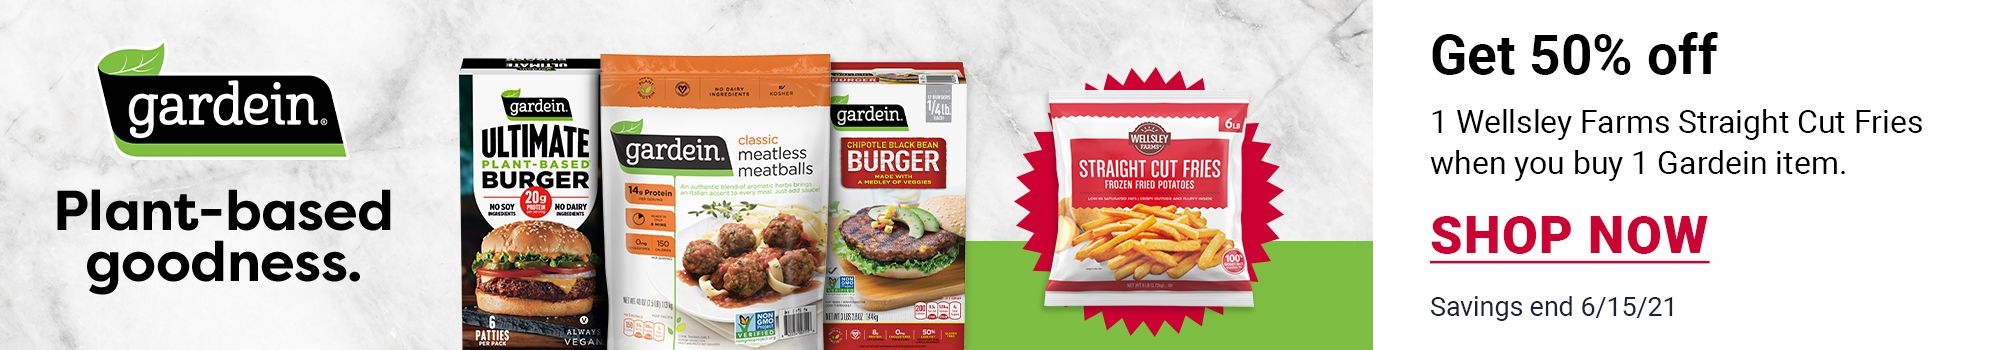 Get 50% off 1 Wellsley Farms Straight Cut Fries when you buy 1 Gardein item. Examples of items consist of Plant-based goodness, Gardein Ultimate Plant-Based Burger, Gardein Classic Meatless Meatballs, Gardein Chipotle Black Bean Burger.* SHOP NOW. Savings end 6/15/21